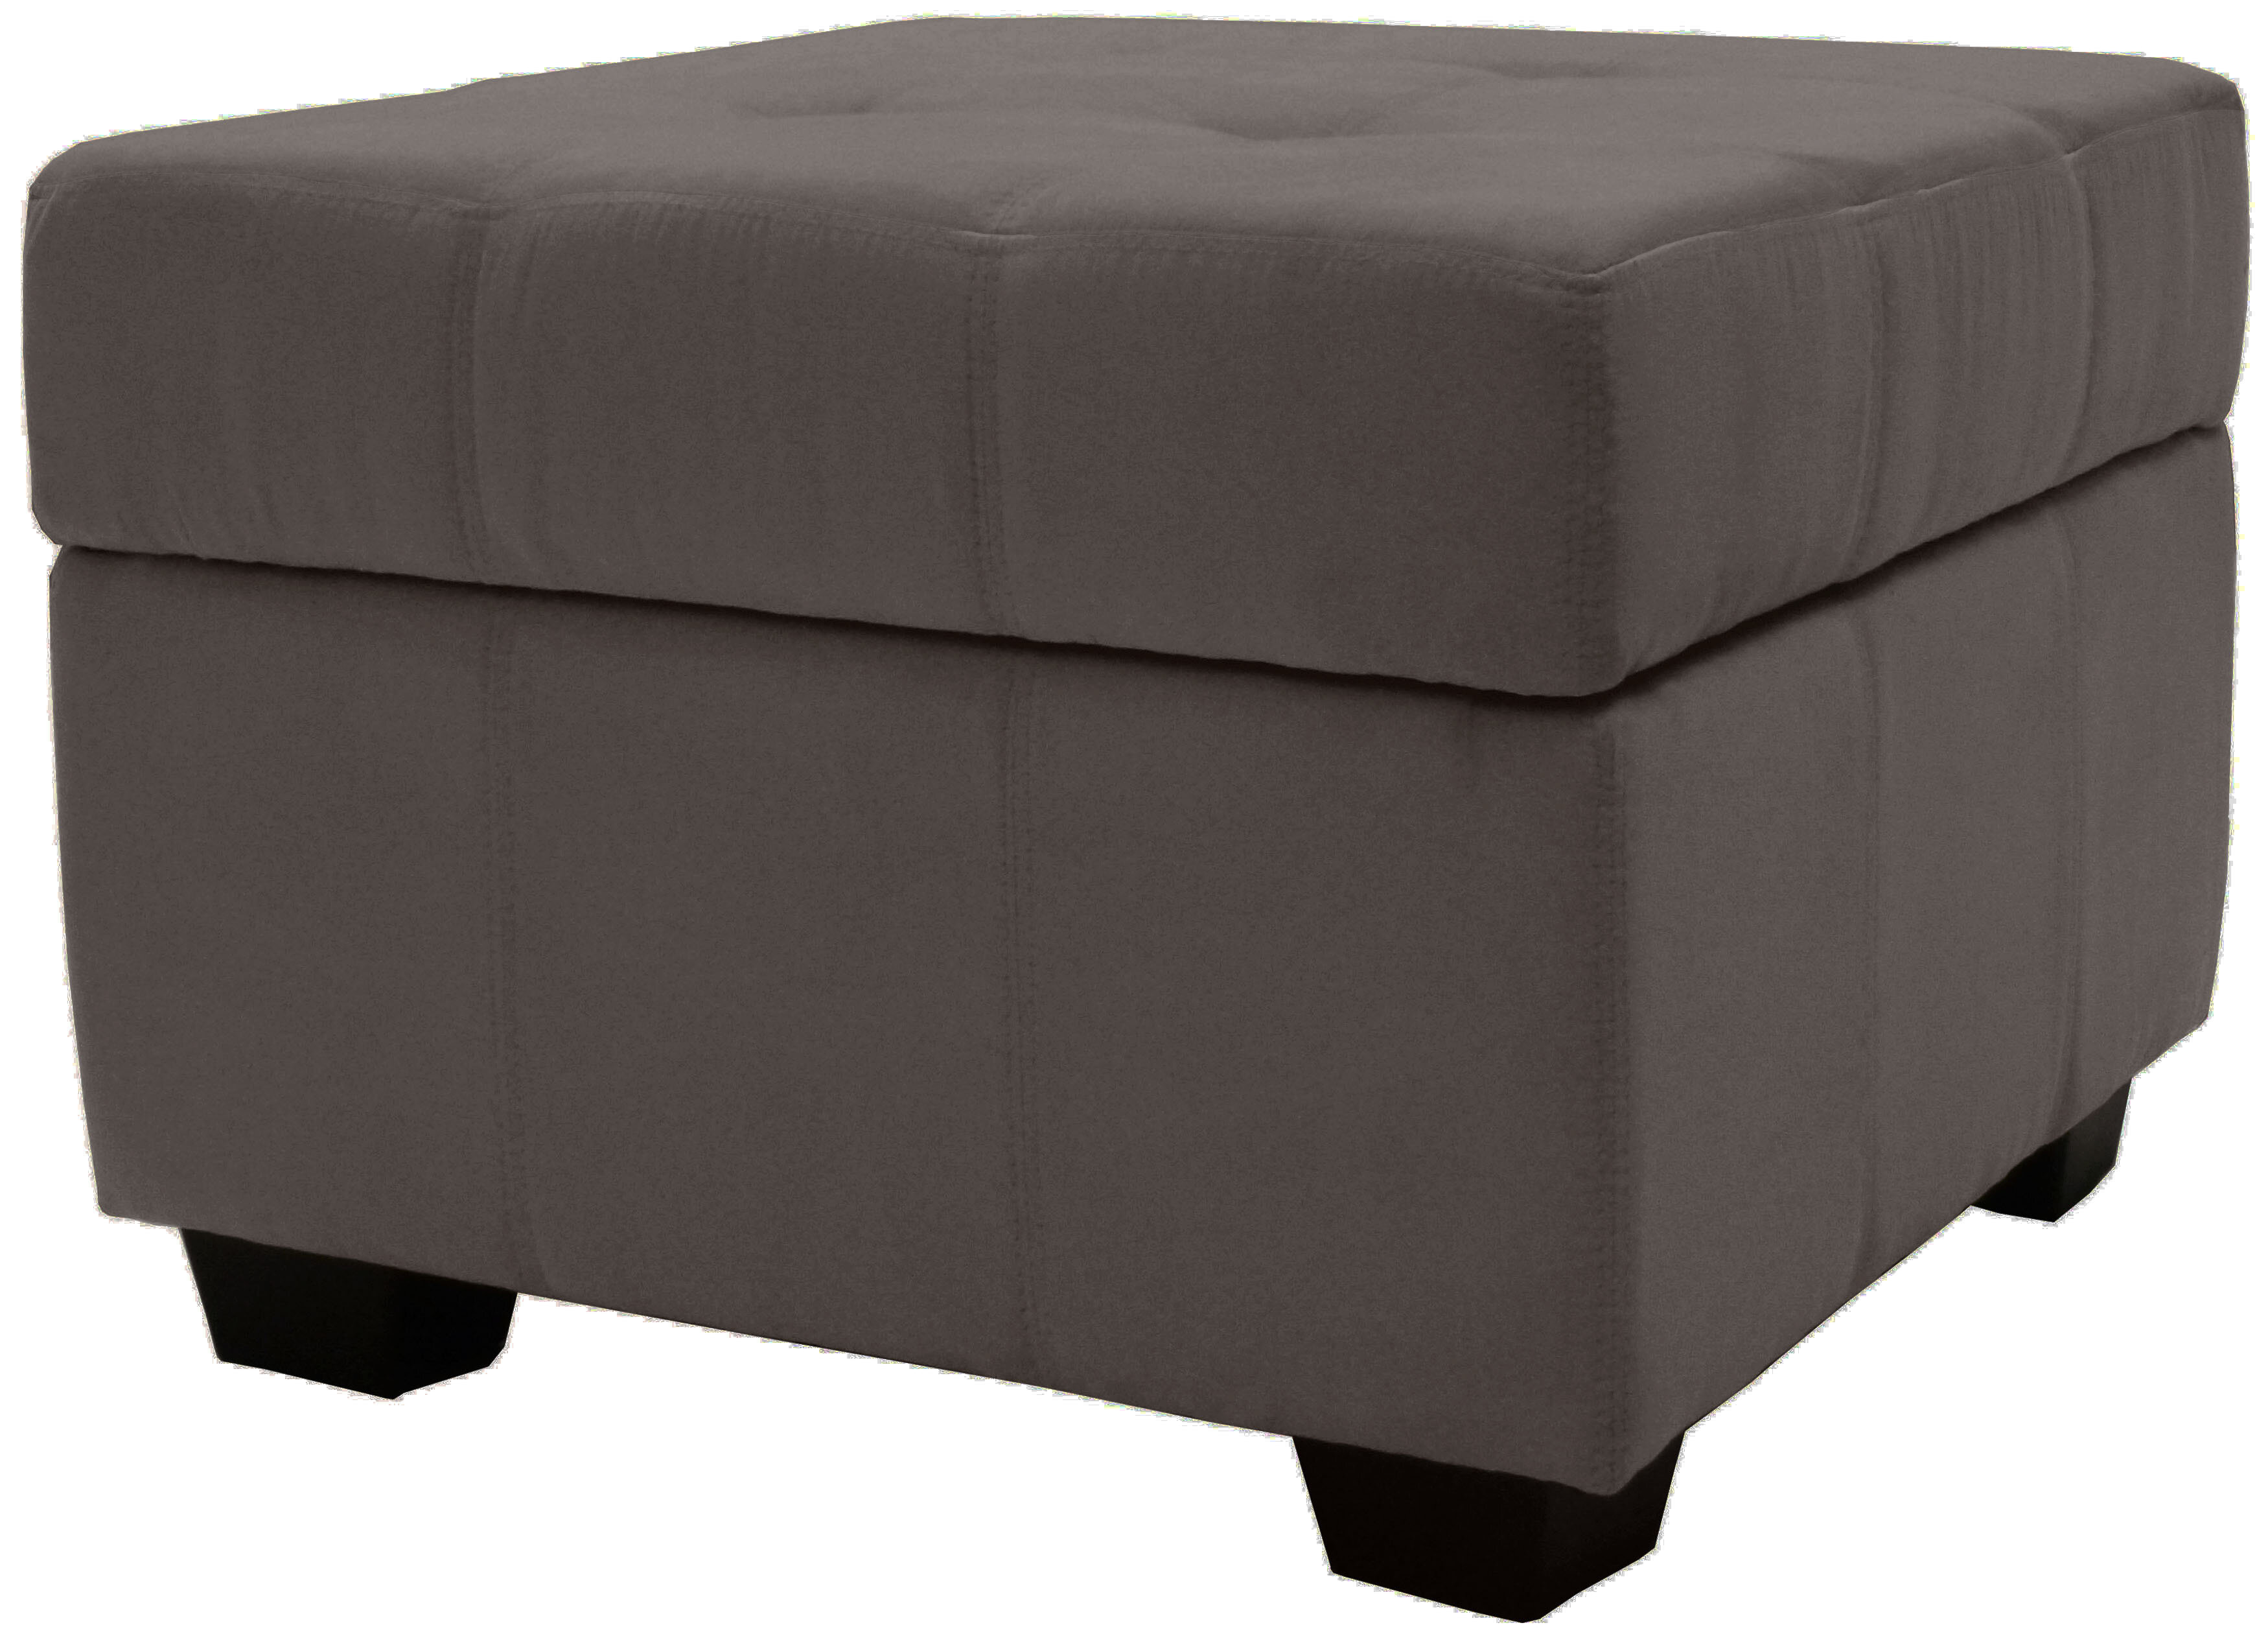 Wondrous Monadnock Storage Ottoman Gmtry Best Dining Table And Chair Ideas Images Gmtryco